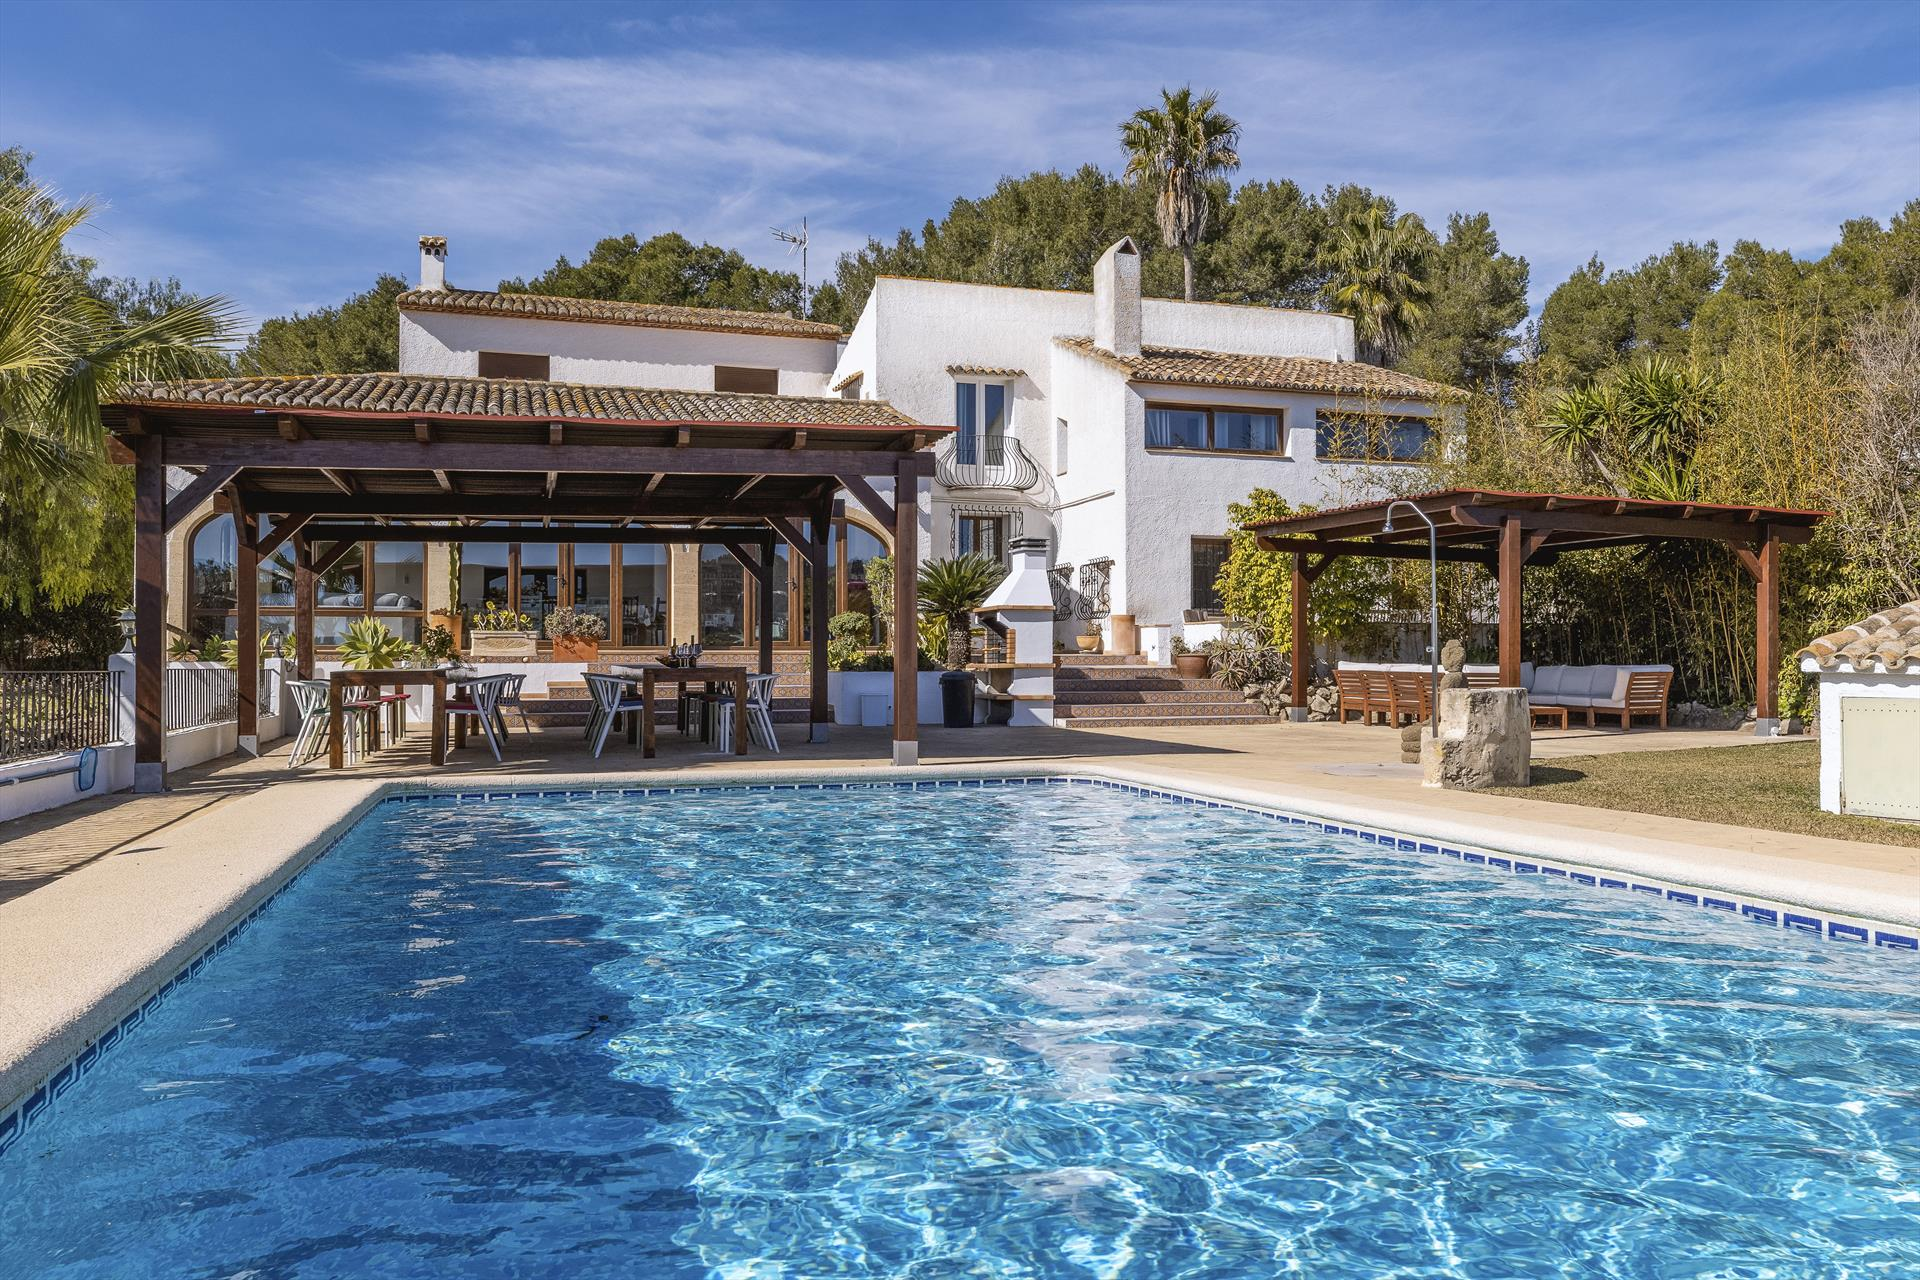 Casa Rosalia 22 pax, Large and cheerful luxury villa  with private pool in Javea, on the Costa Blanca, Spain for 22 persons.....